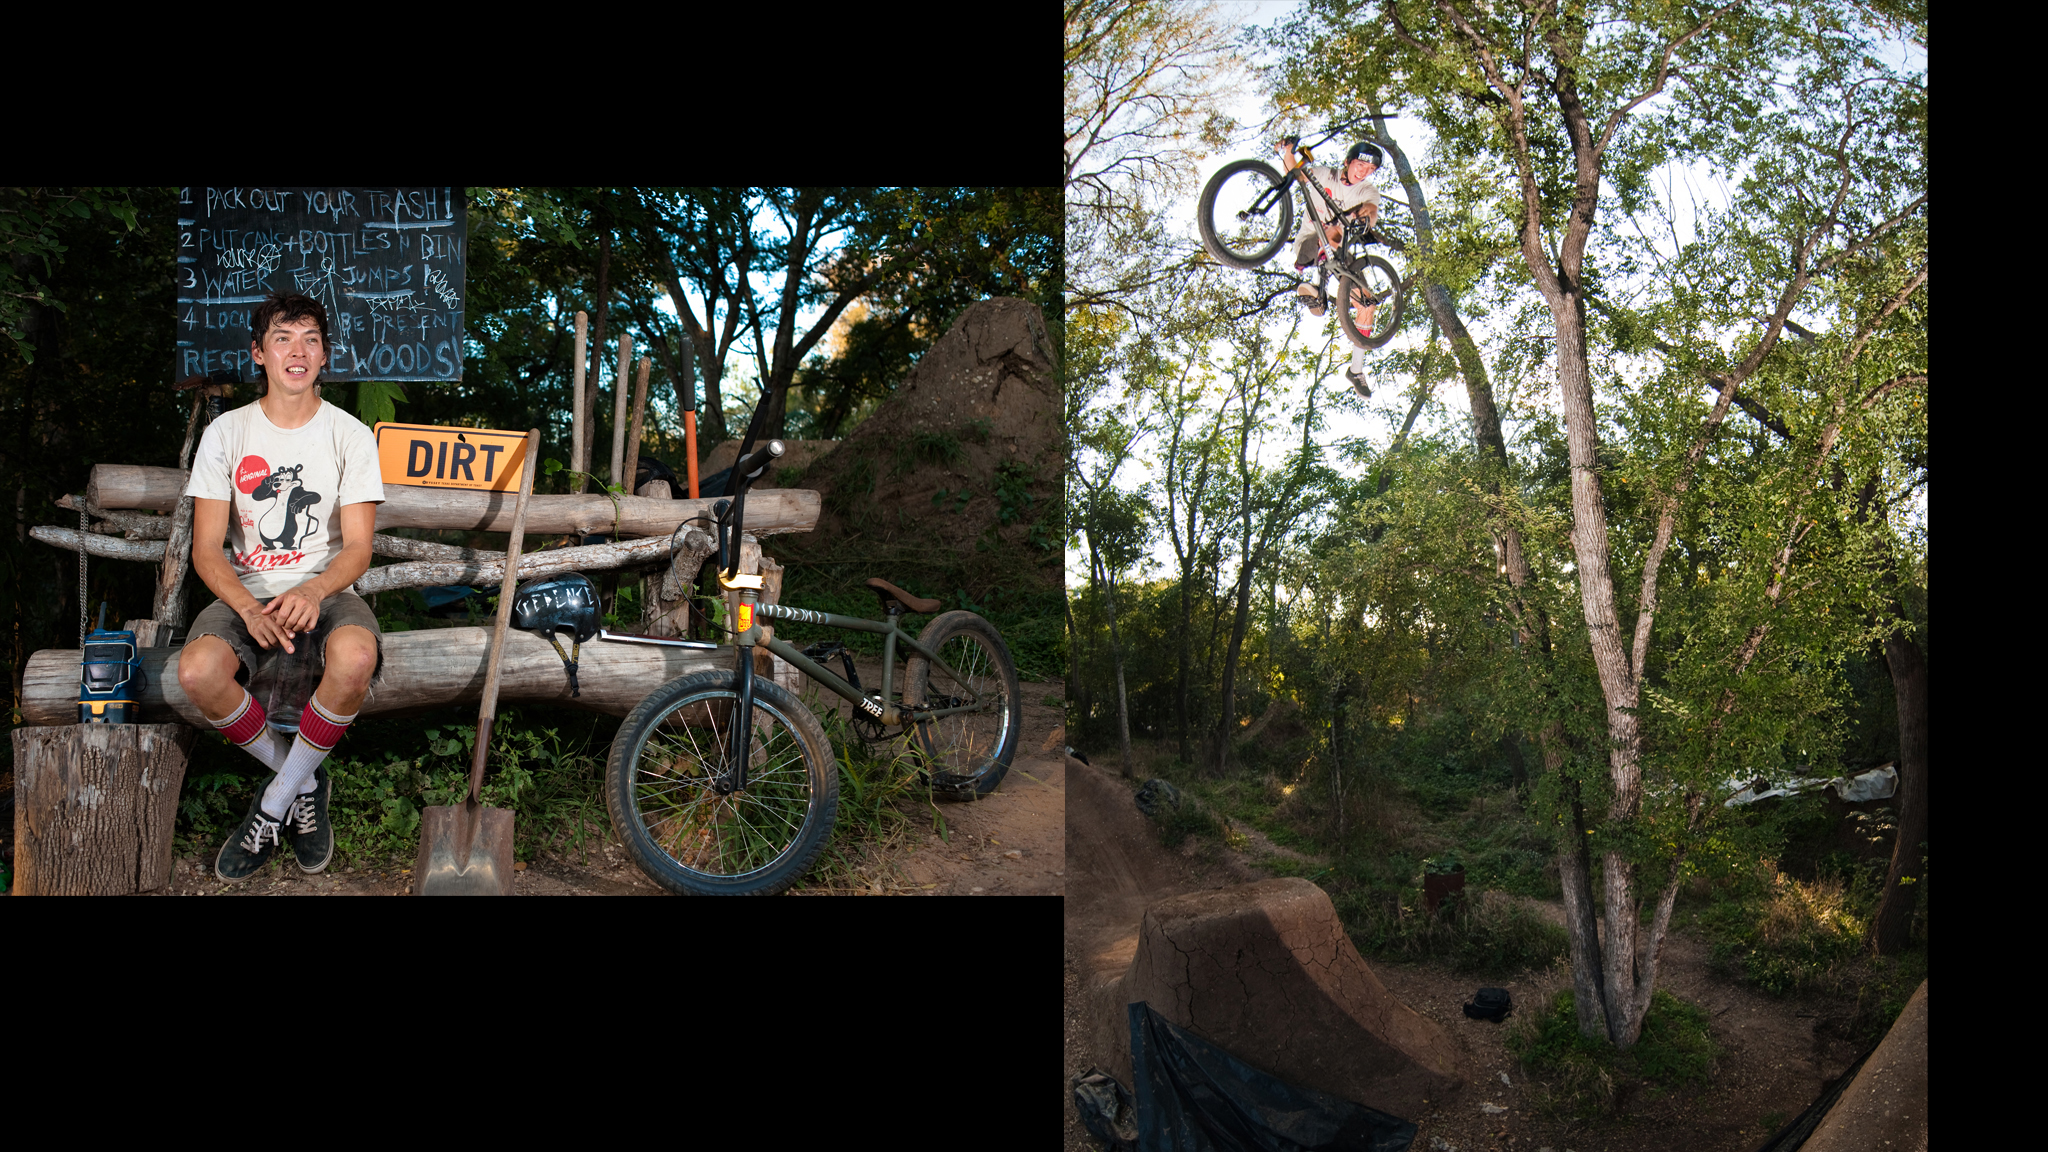 Clint Reynolds, BMX Dirt